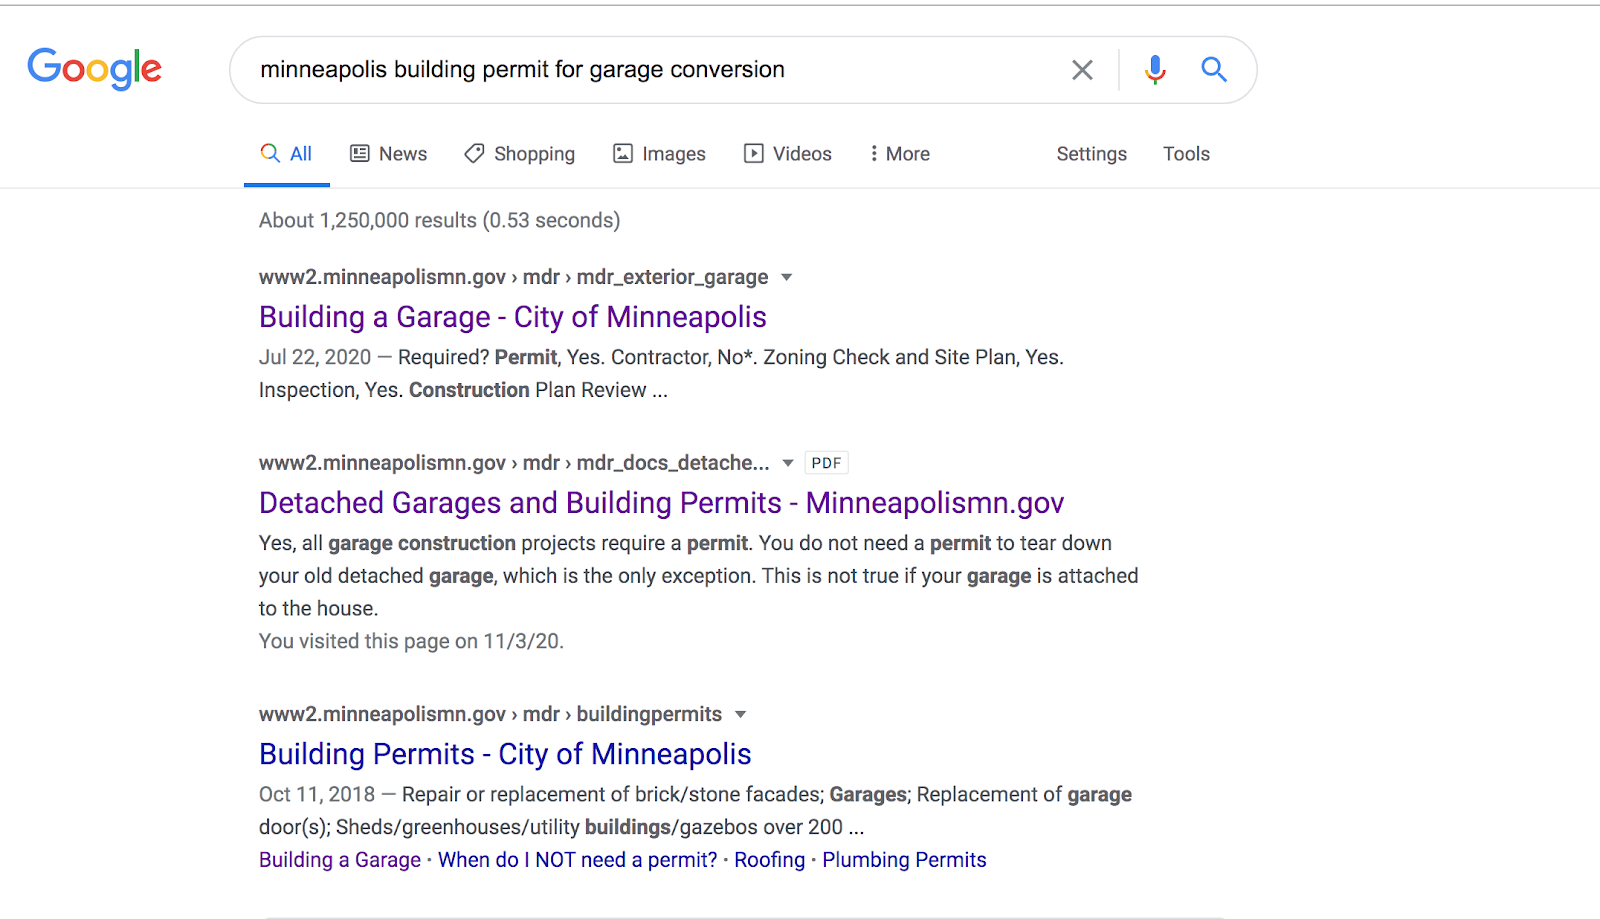 Minneapolis Building permit for garage conversion